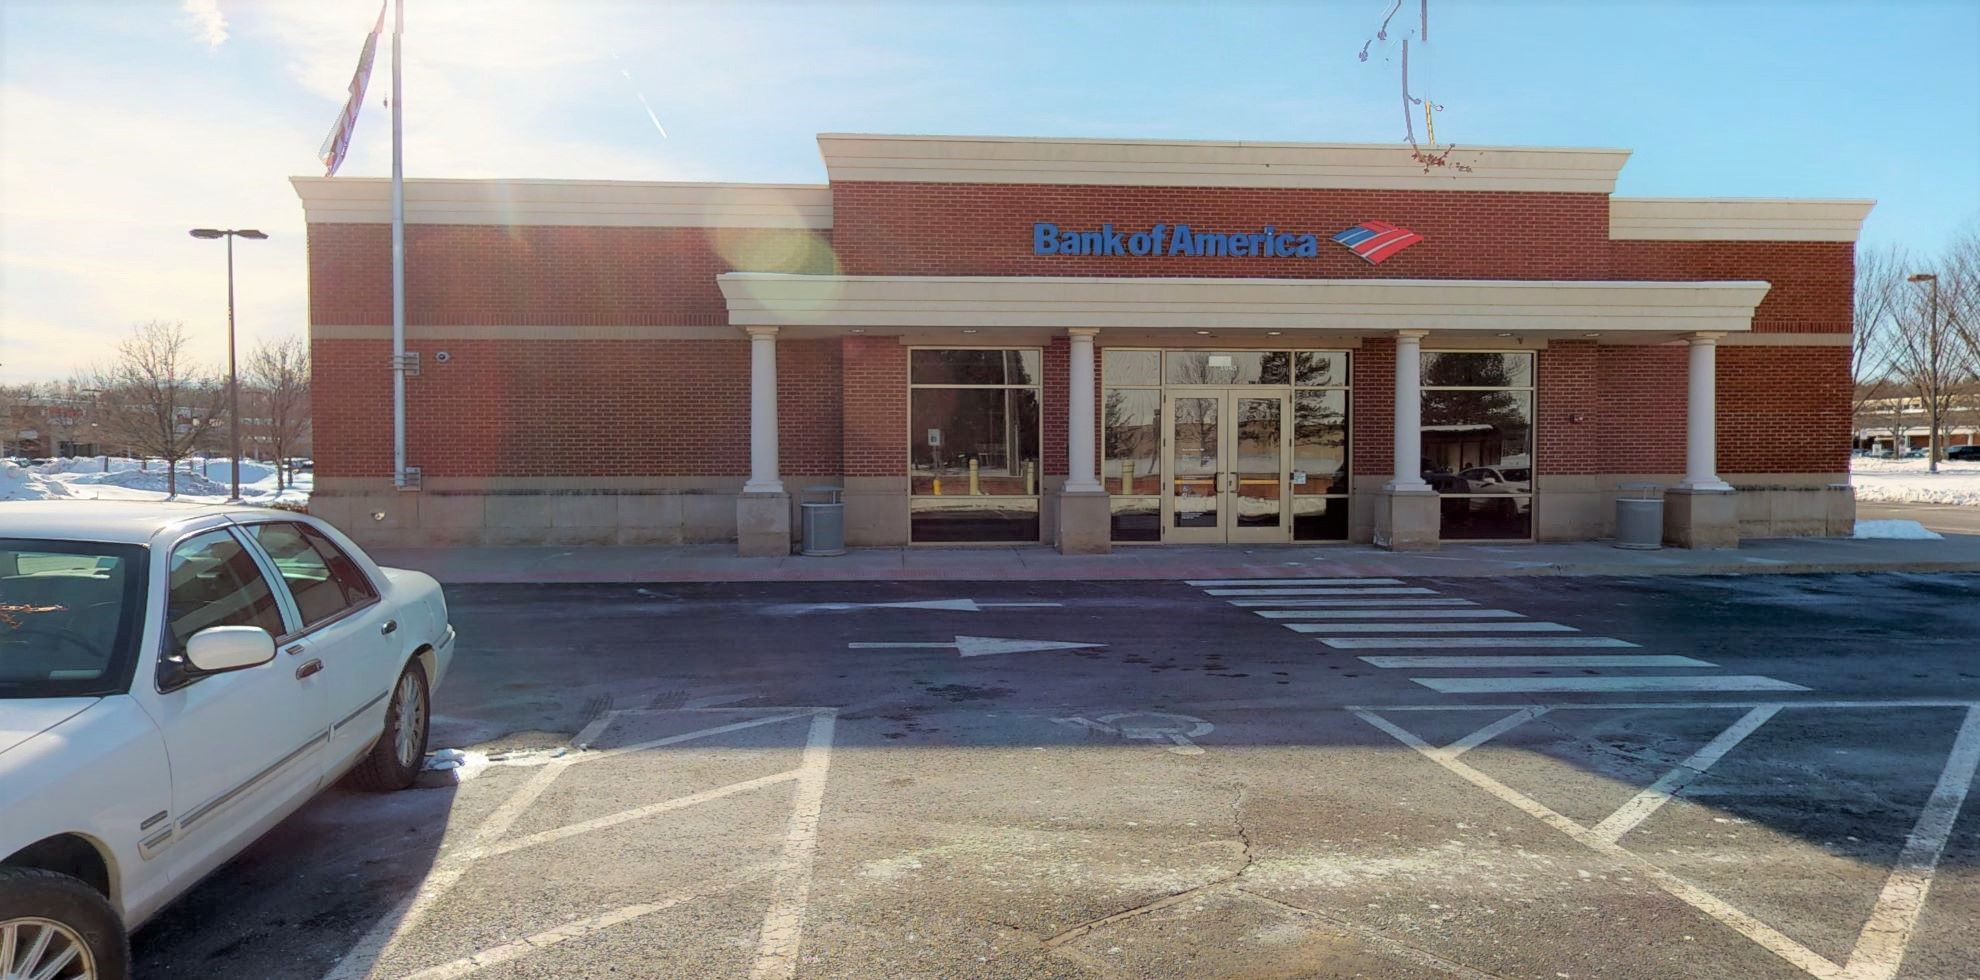 Bank of America financial center with drive-thru ATM and teller | 1045 Kennedy Rd, Windsor, CT 06095